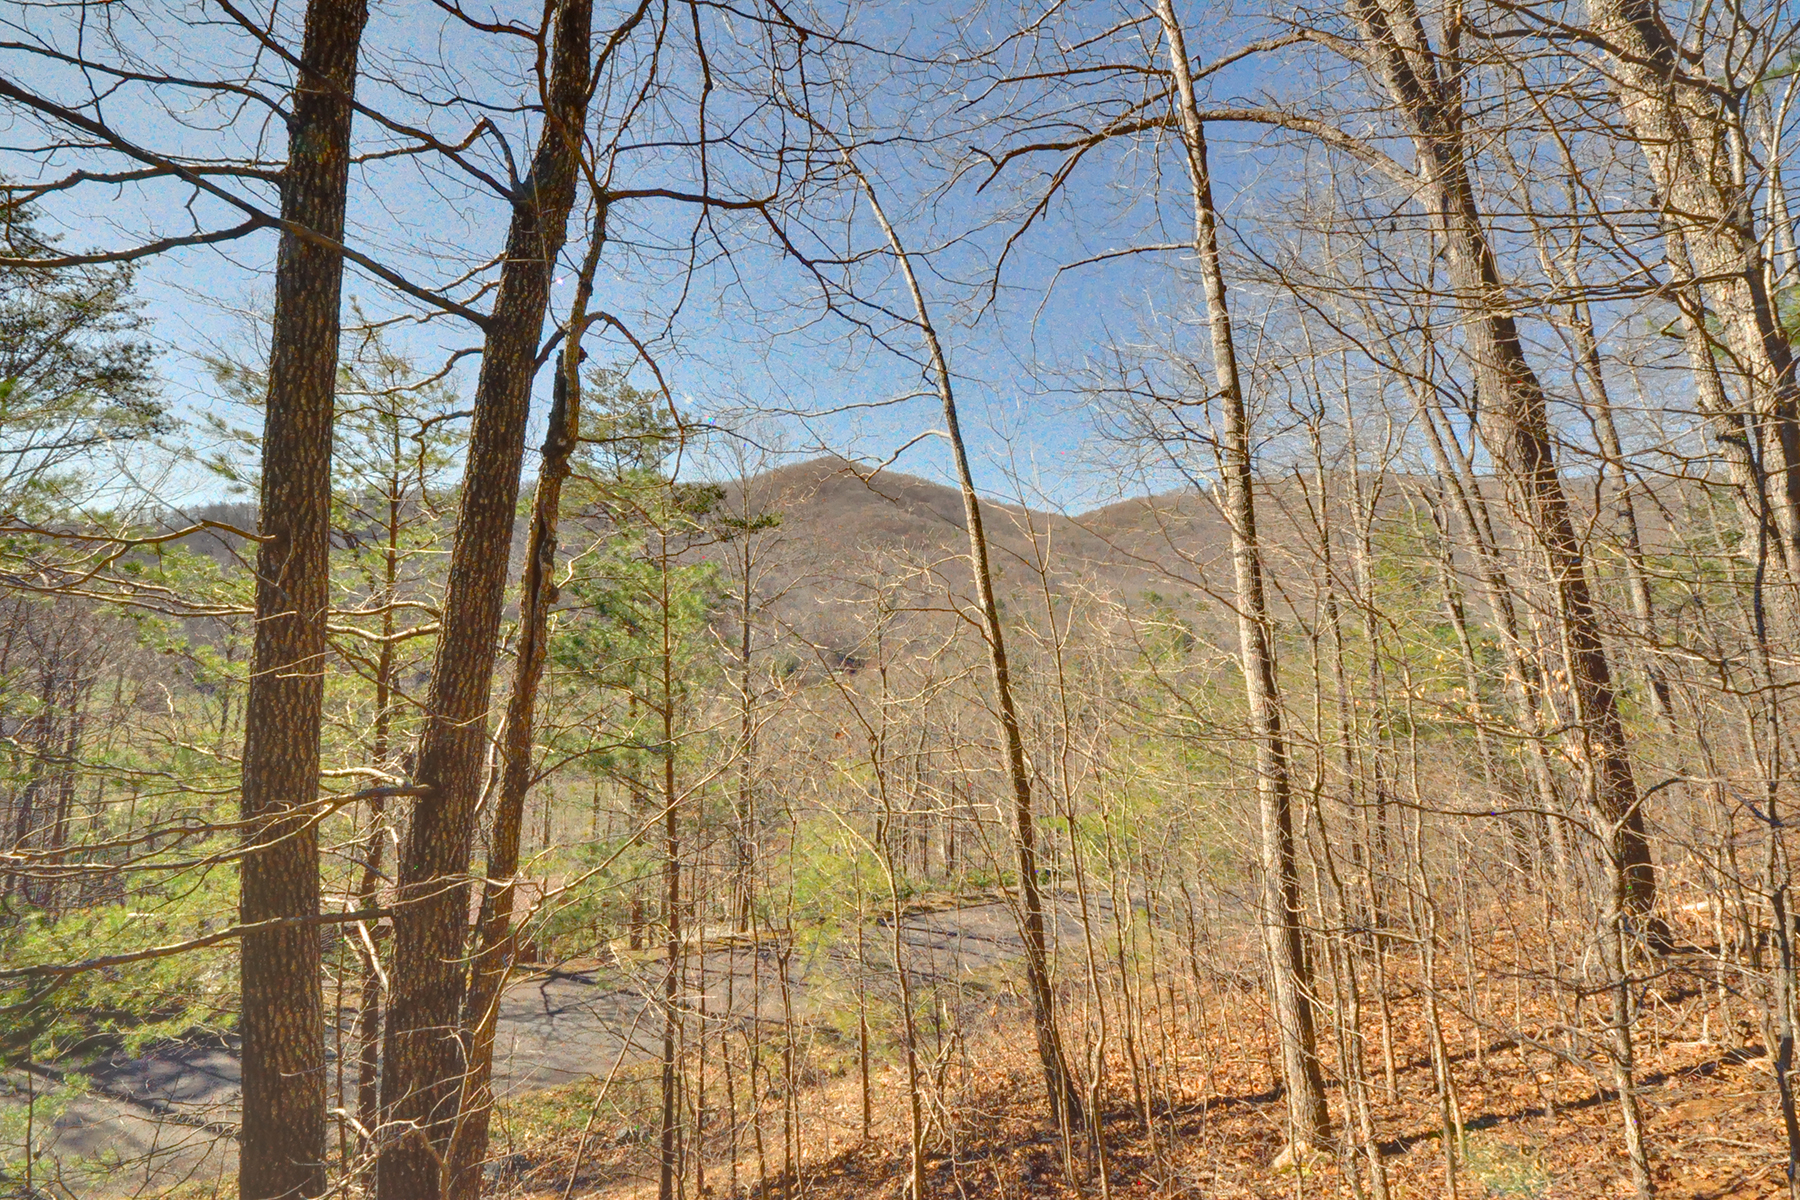 Land for Sale at BEAUTIFUL MOUNTAIN LOT 9999 Tryst Dr 6, Asheville, North Carolina 28805 United States